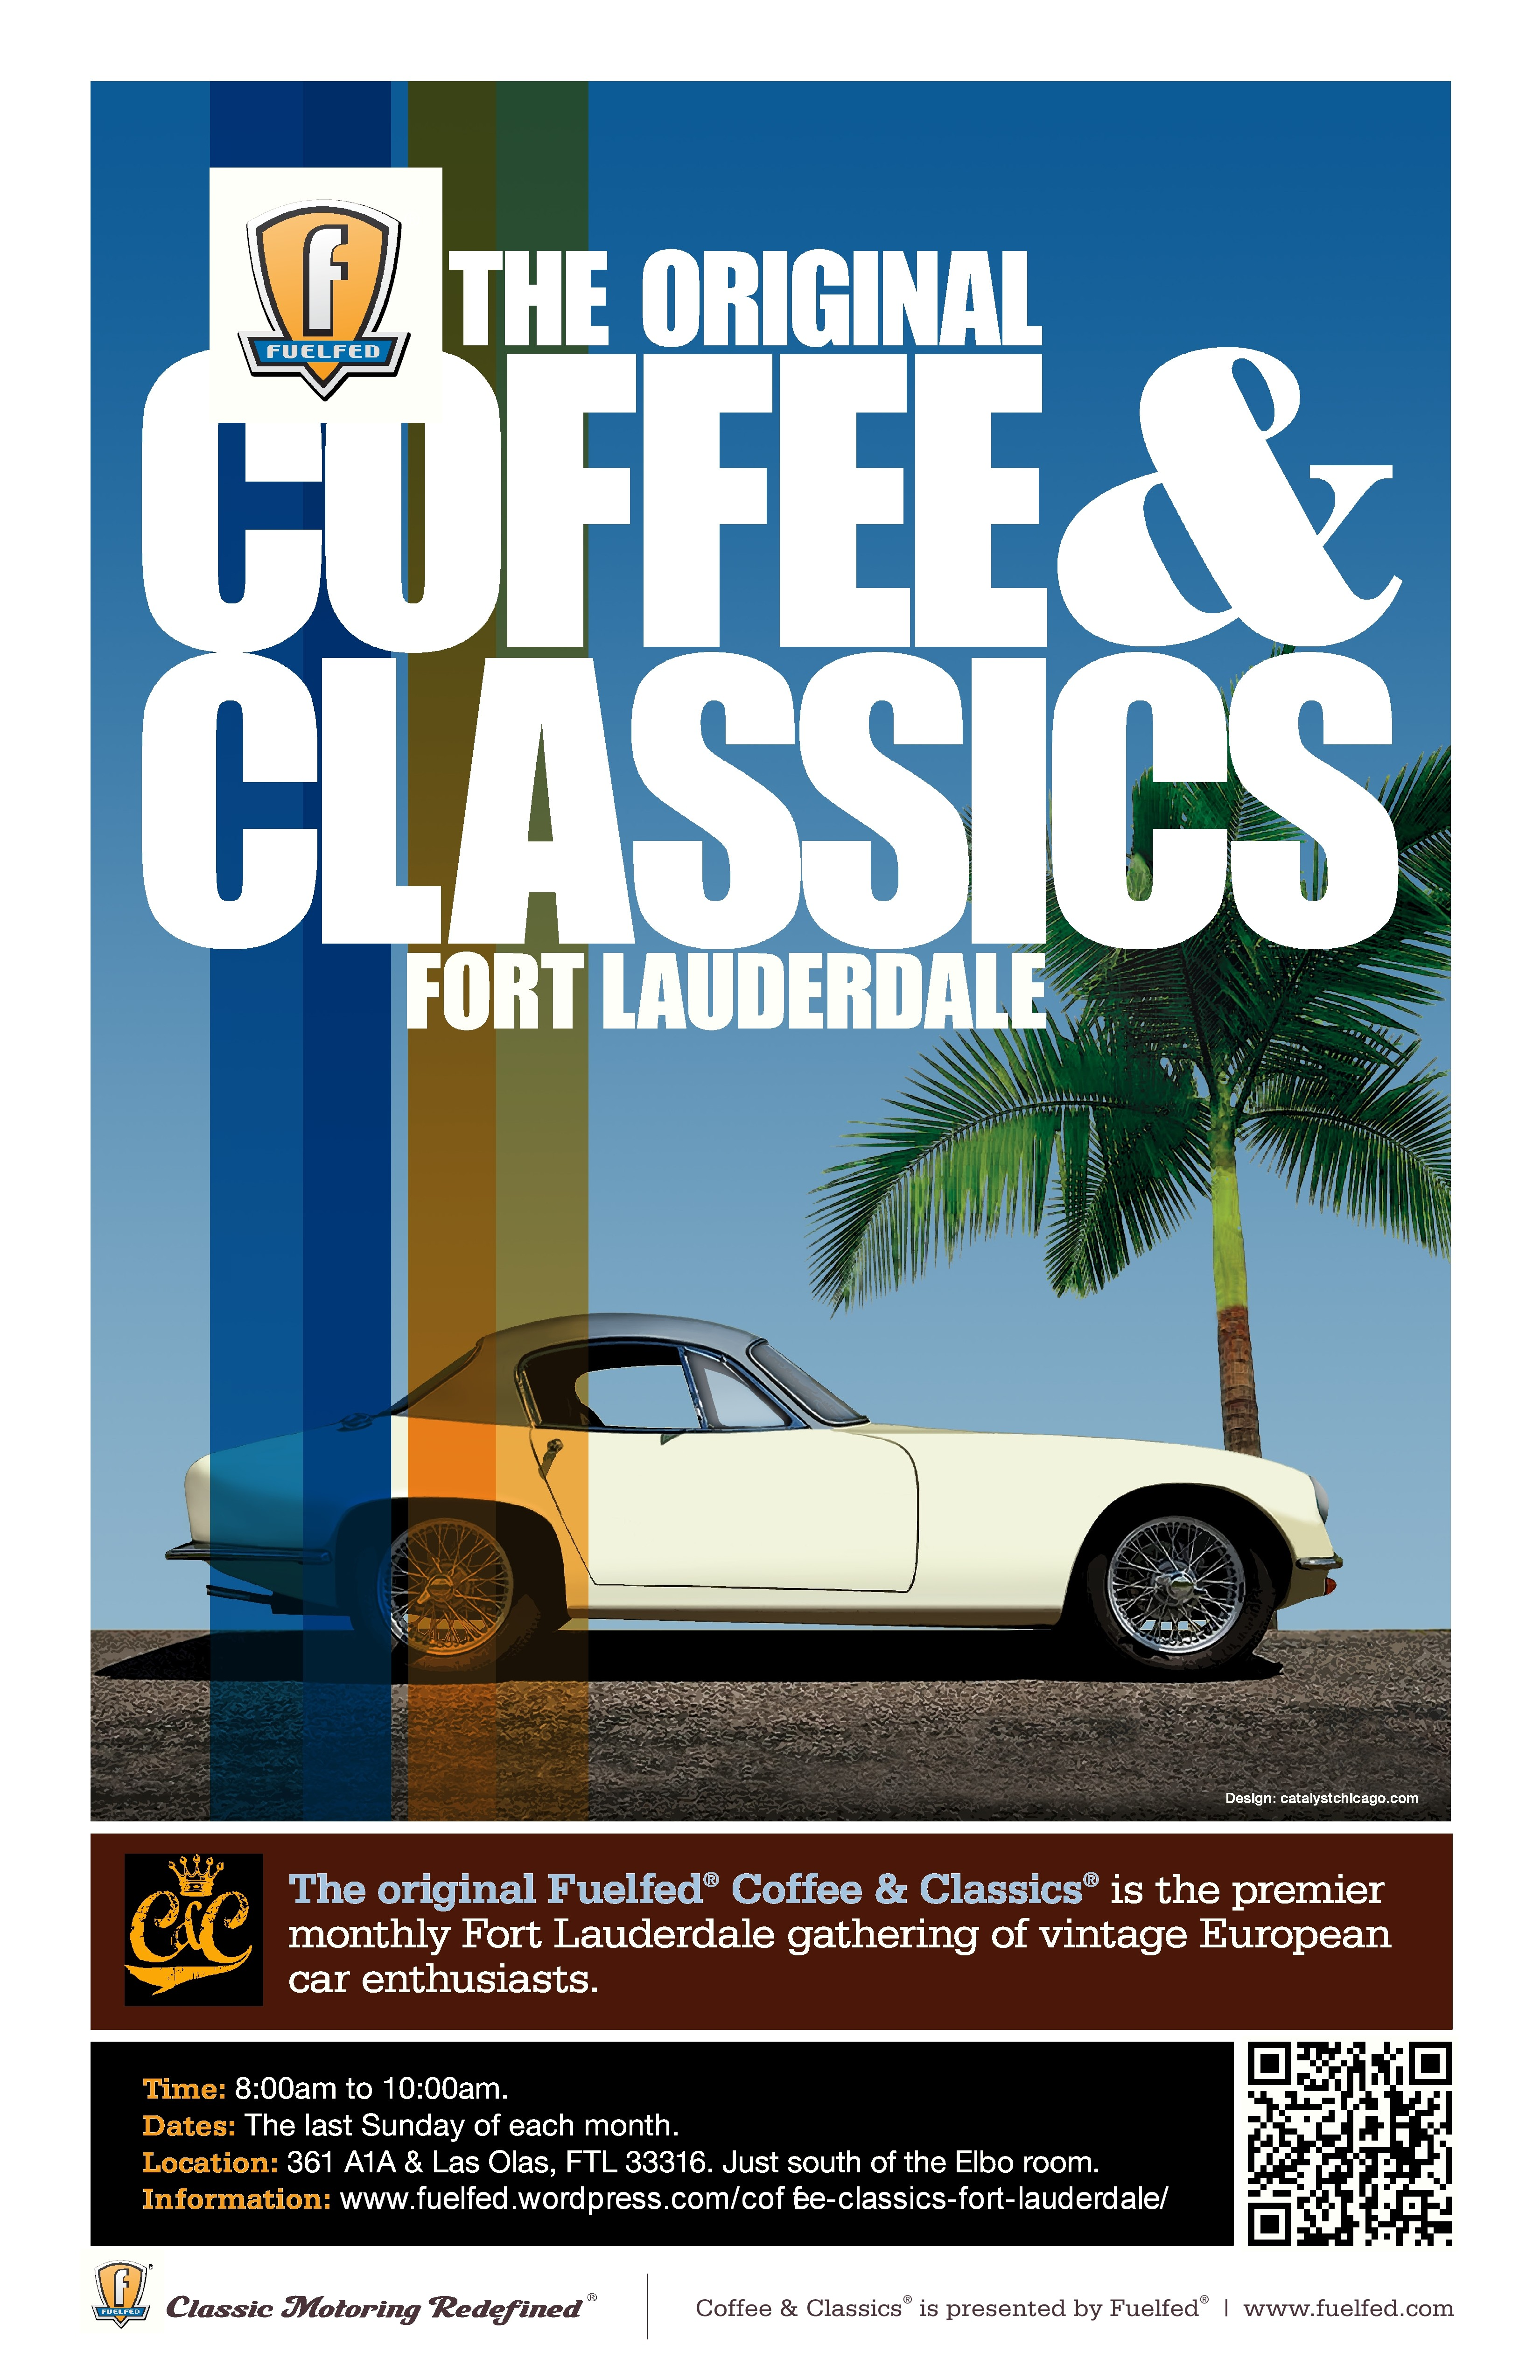 Fuelfed Coffee Classics FLA Car Shows - Fort lauderdale car show